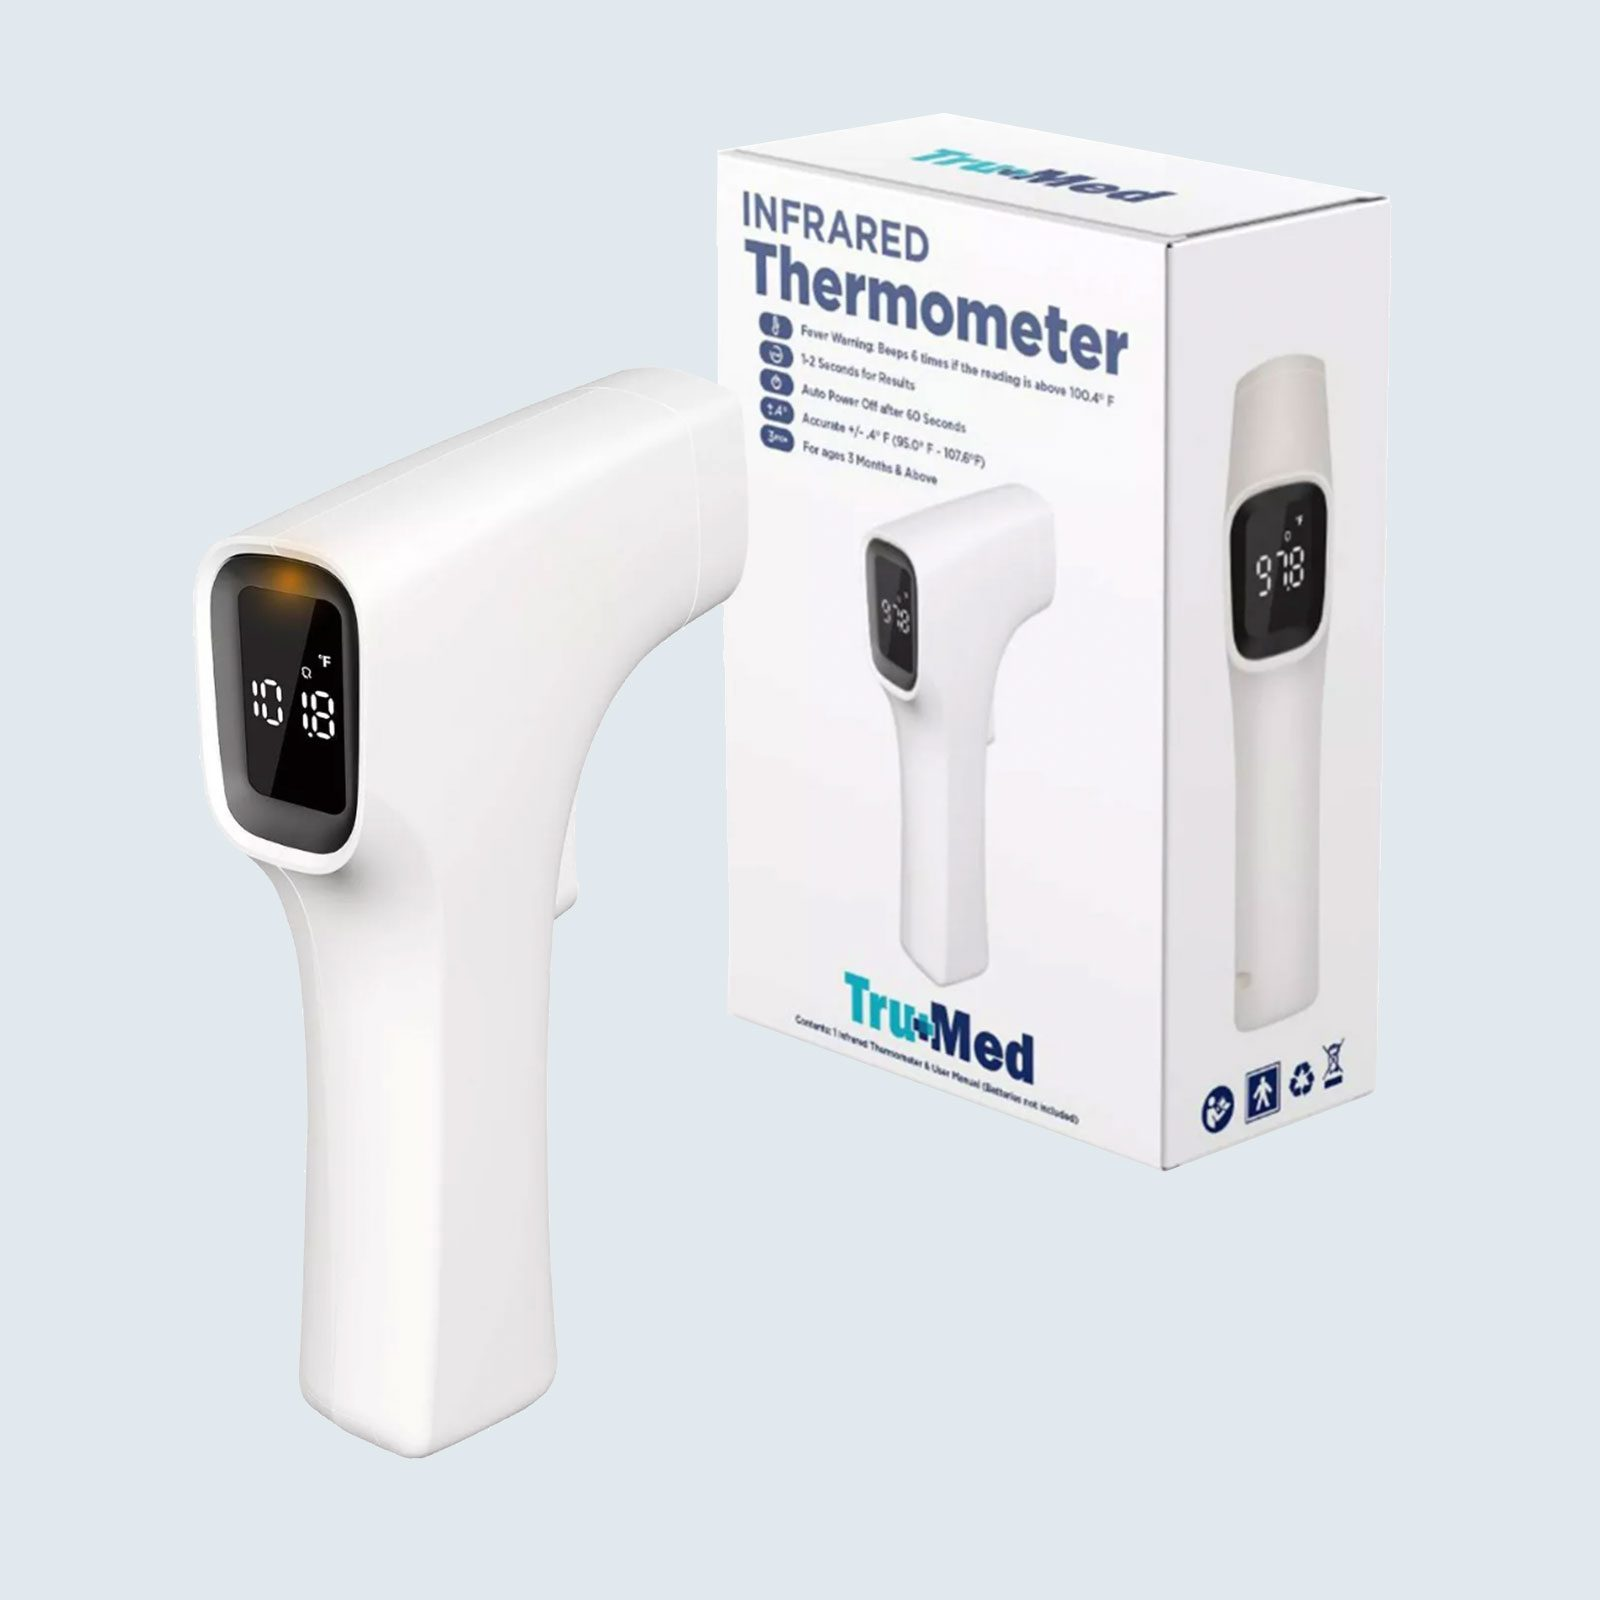 Tru+Med Touch-Free Infrared Thermometer